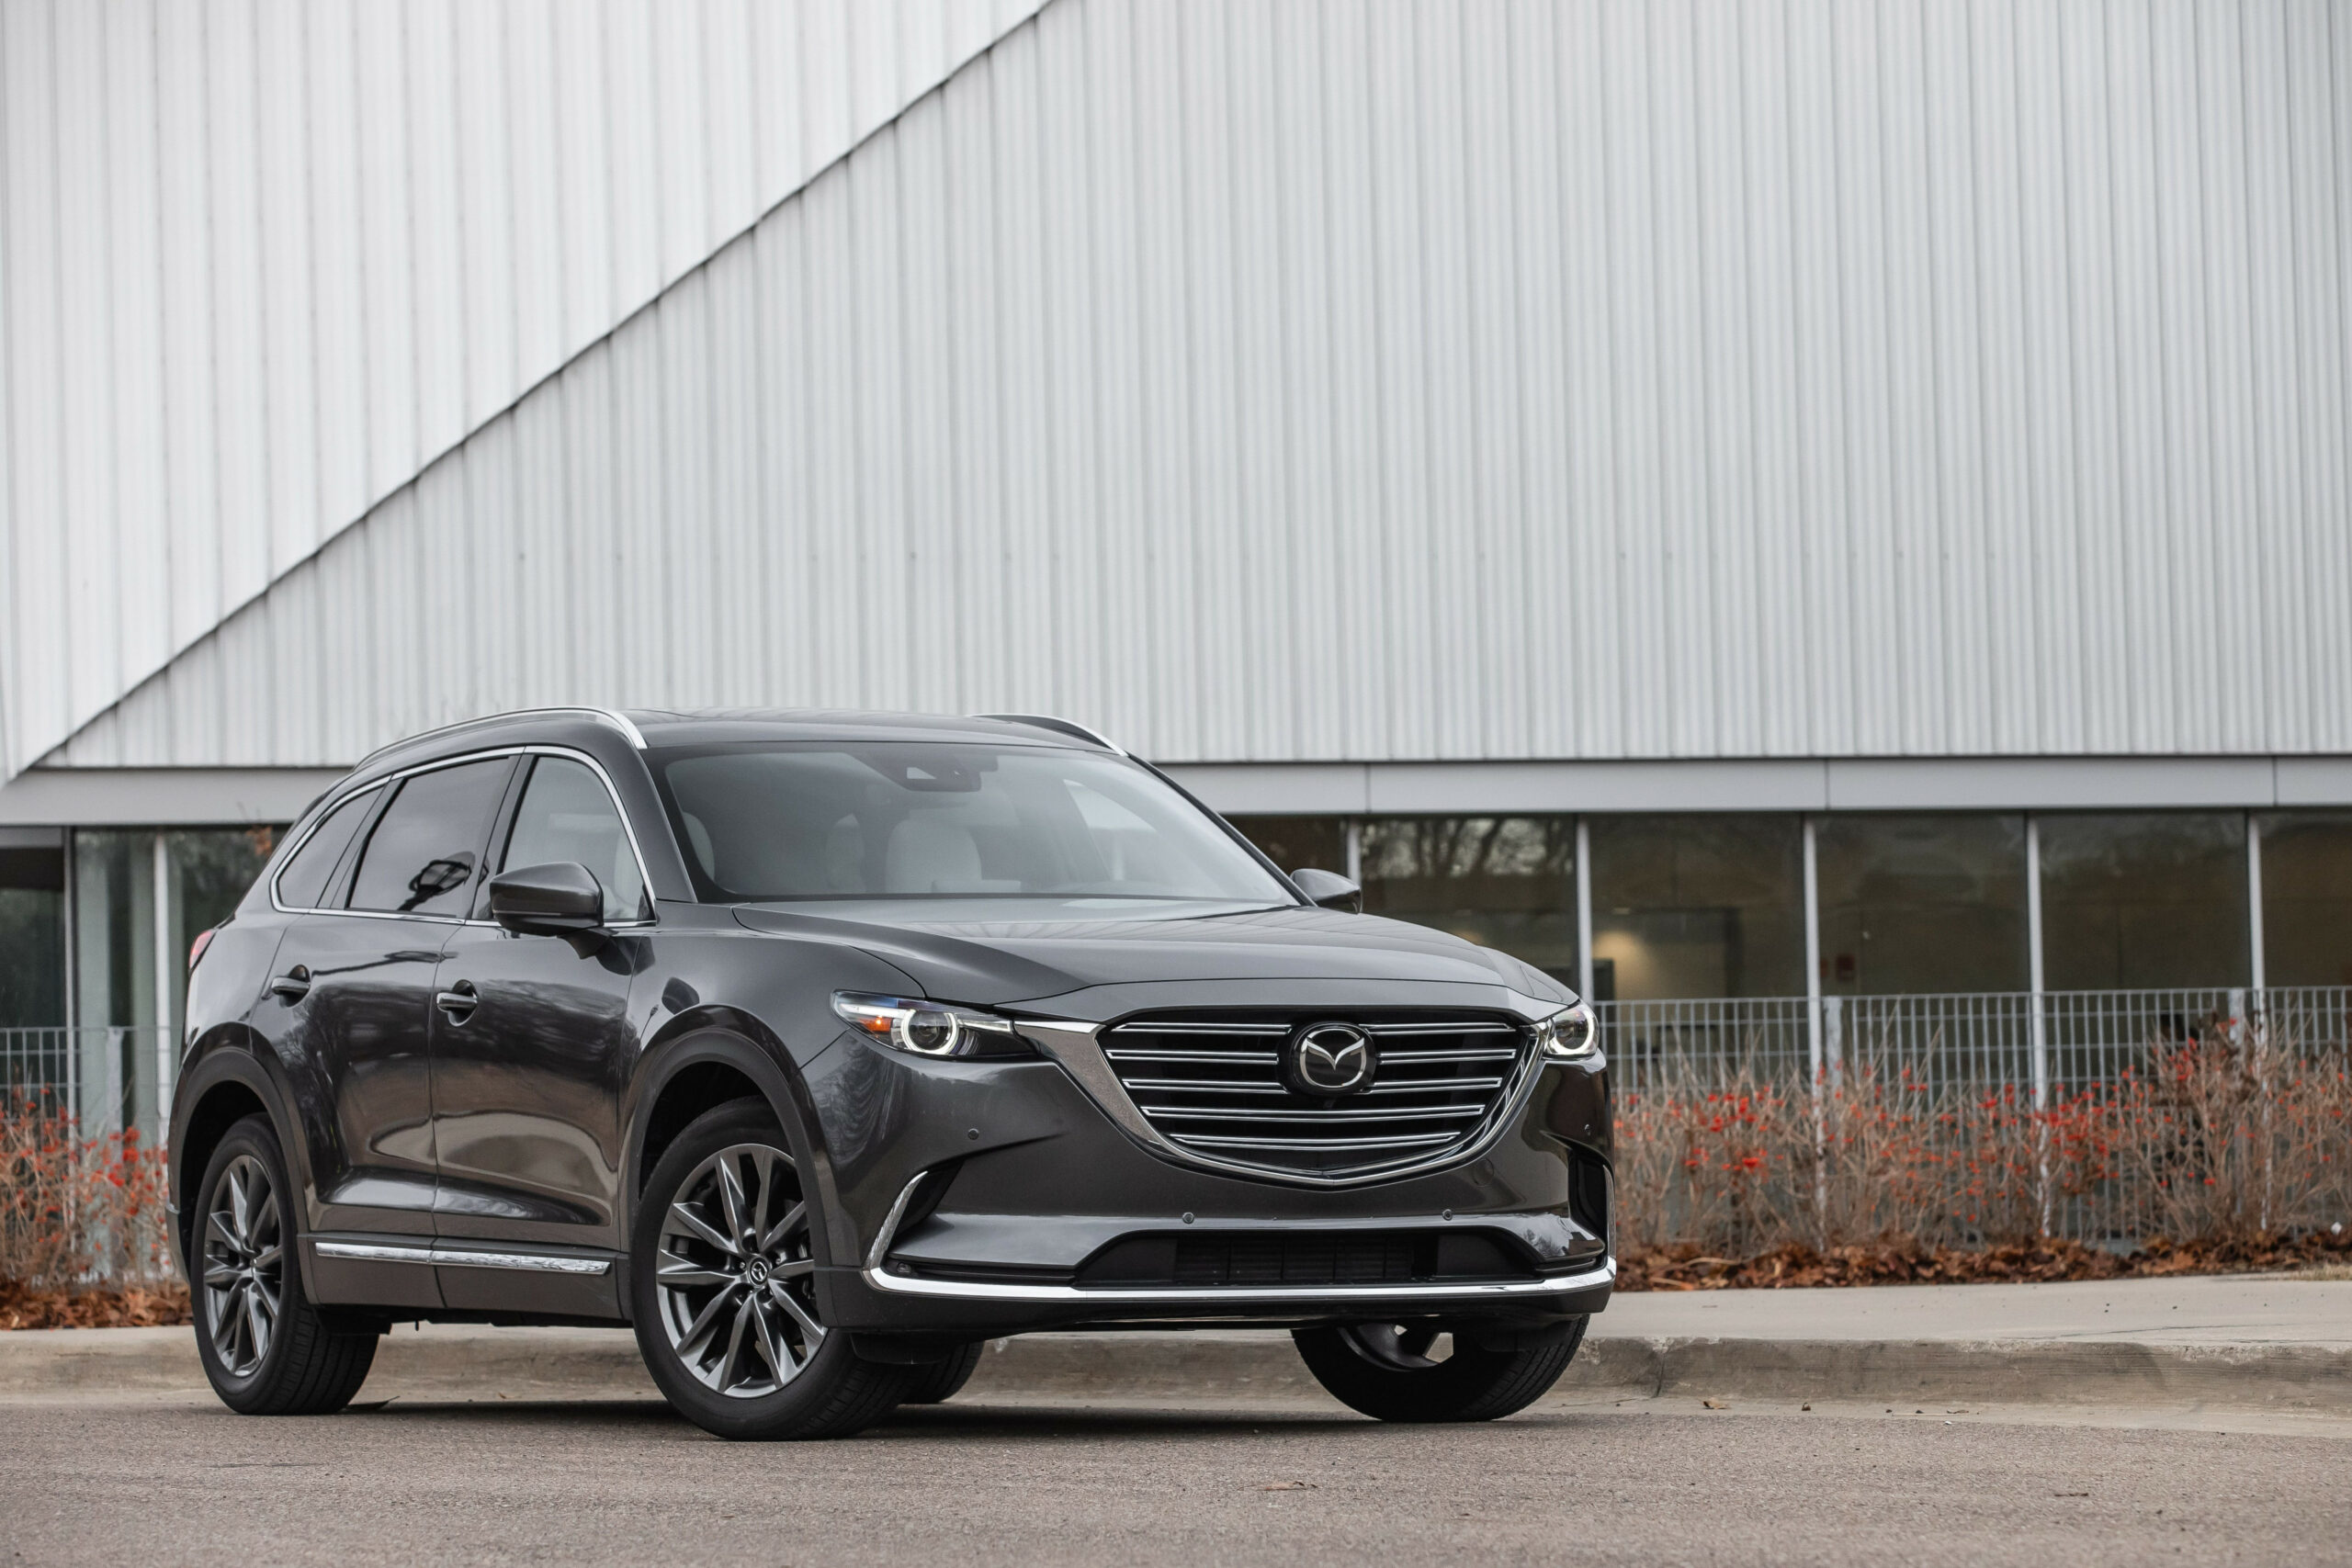 8 Mazda CX-8 Review, Pricing, and Specs - 2020 mazda pictures